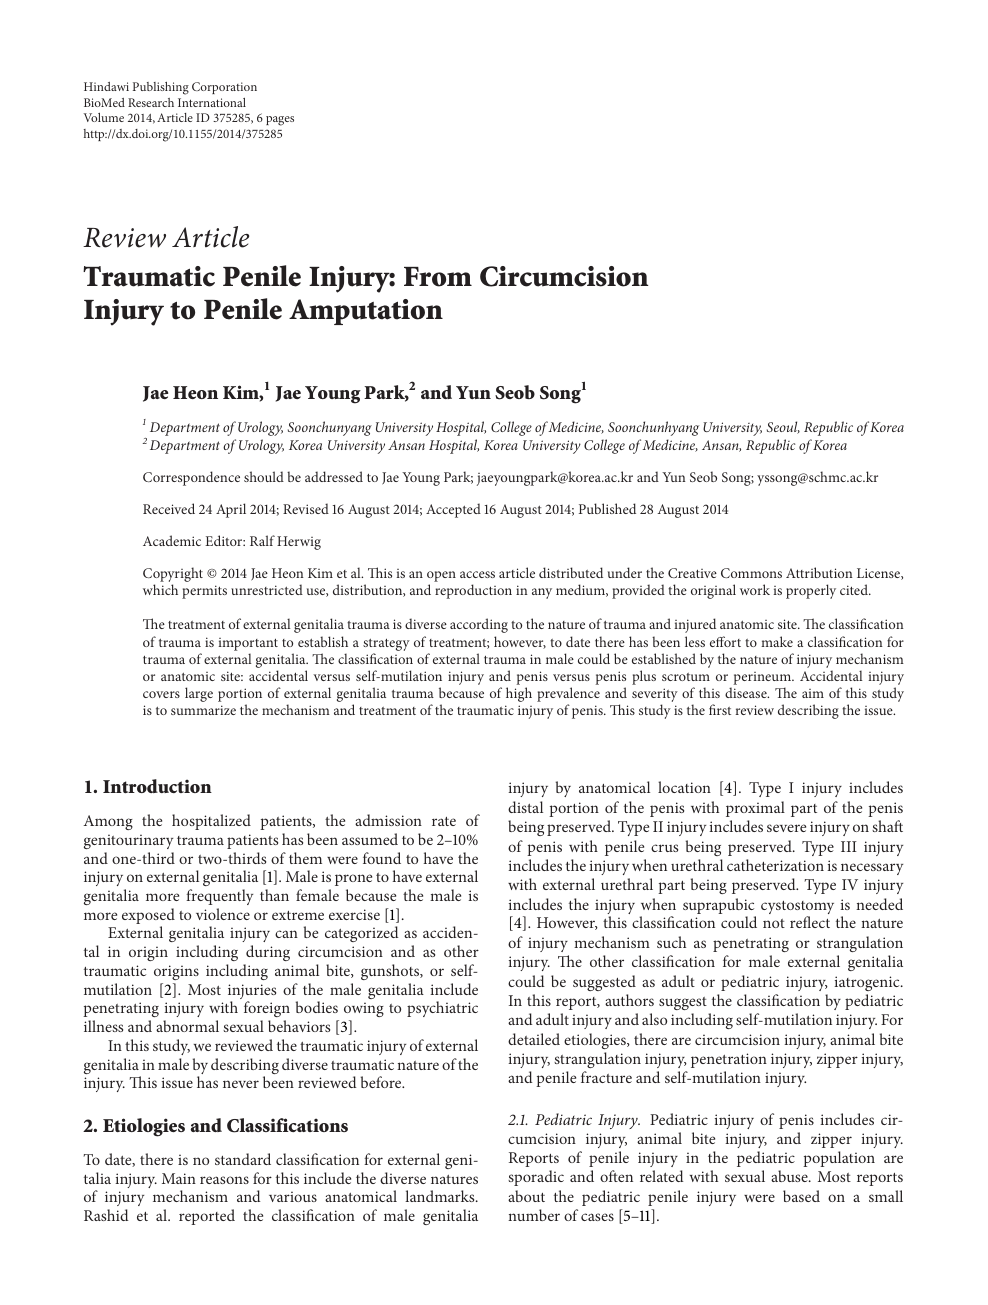 Traumatic Penile Injury: From Circumcision Injury to Penile